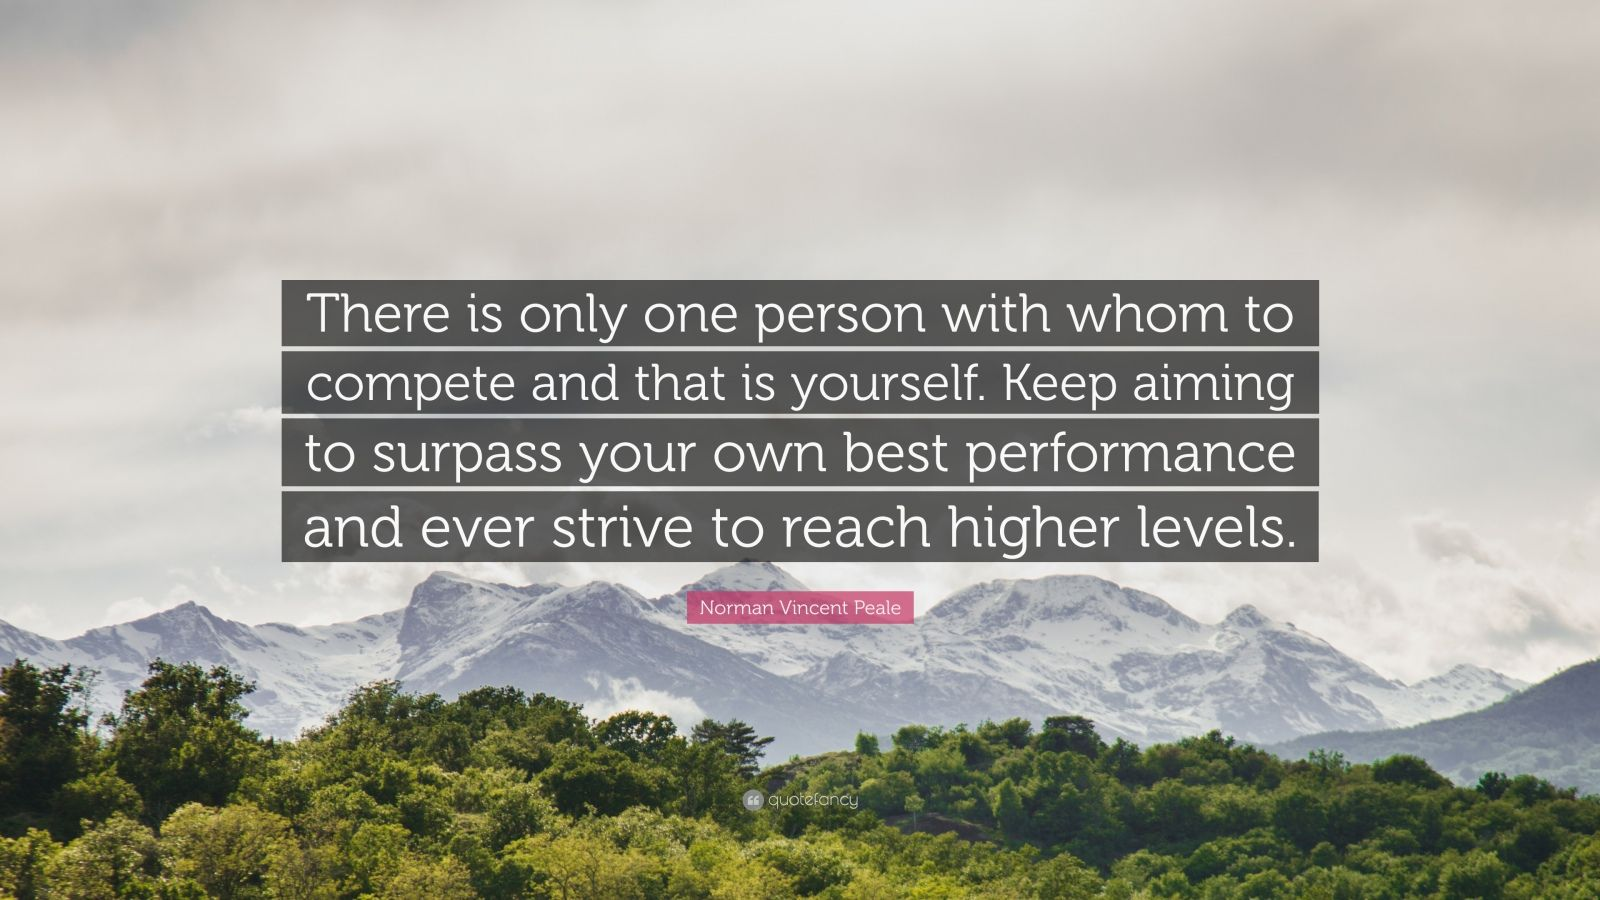 """Norman Vincent Peale Quote: """"There is only one person with whom to compete and that is yourself. Keep aiming to surpass your own best performance and ever strive to reach higher levels."""""""